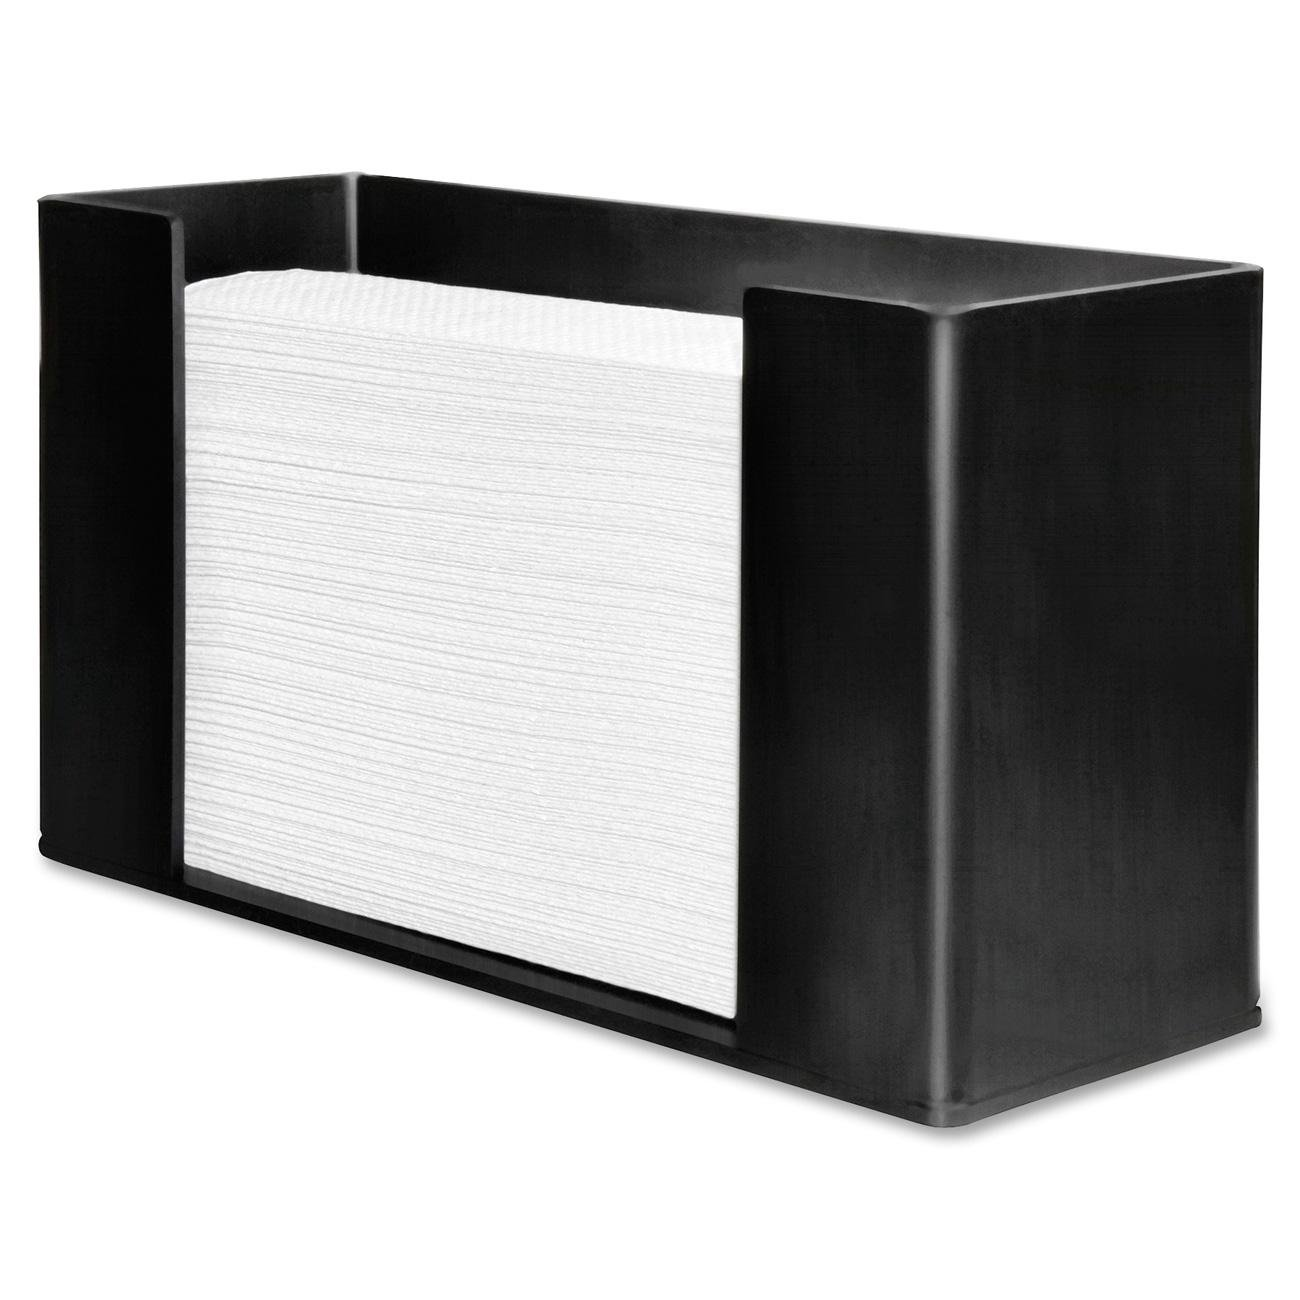 Genuine Joe GJO11524 Acrylic C Fold/Multifold Paper Towel Dispenser, 11-1/2